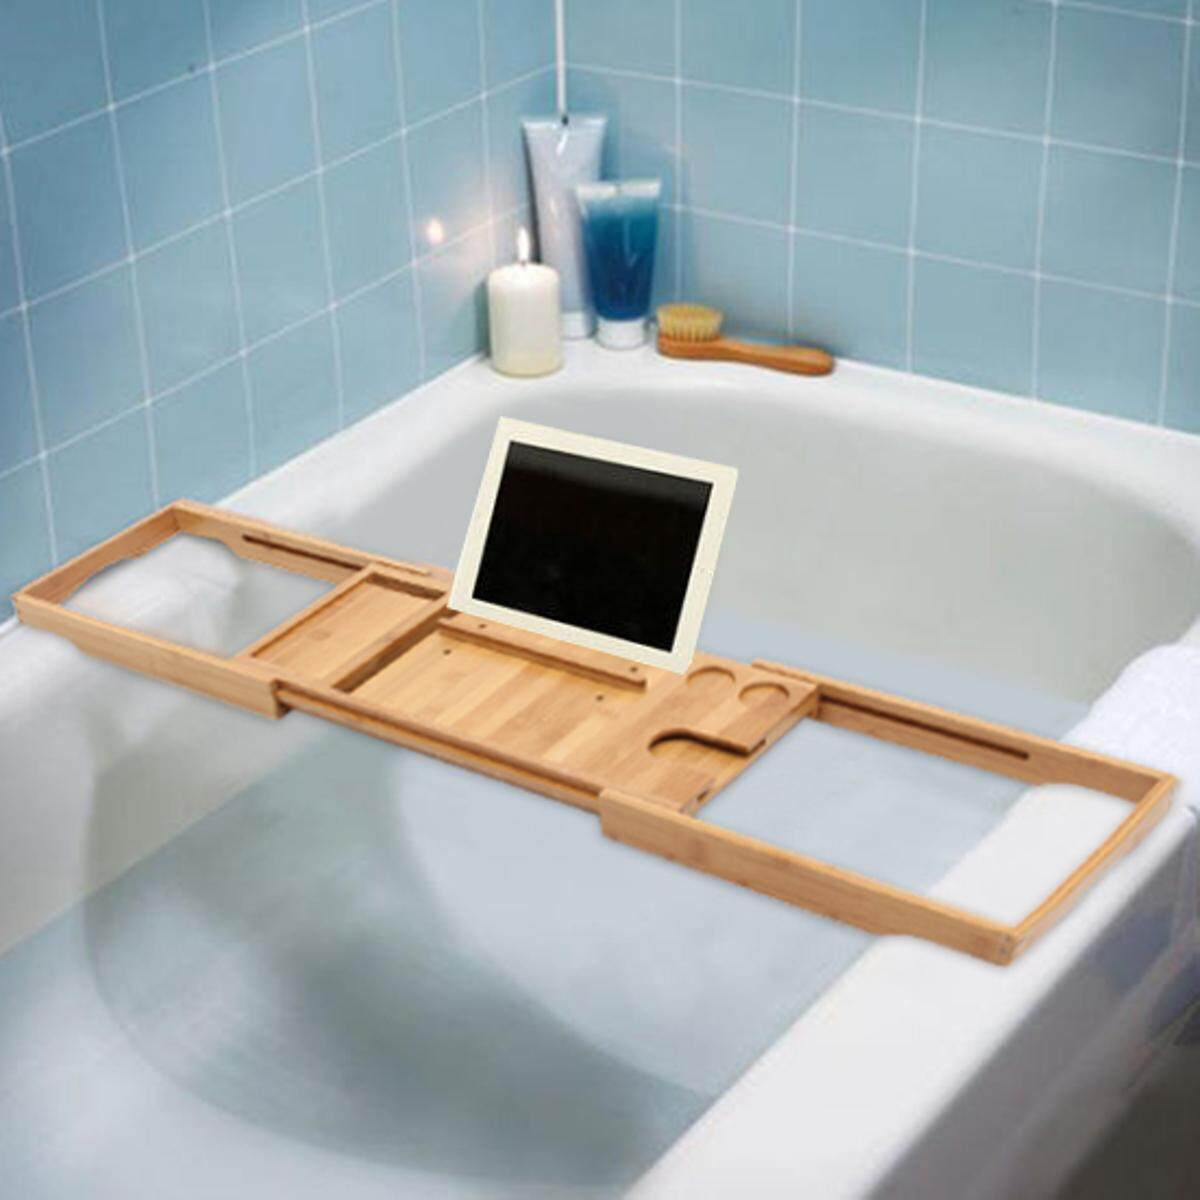 Features Bathtub Caddy Bamboo Bath Tub Rack Tray Bathroom Cloth Book ...